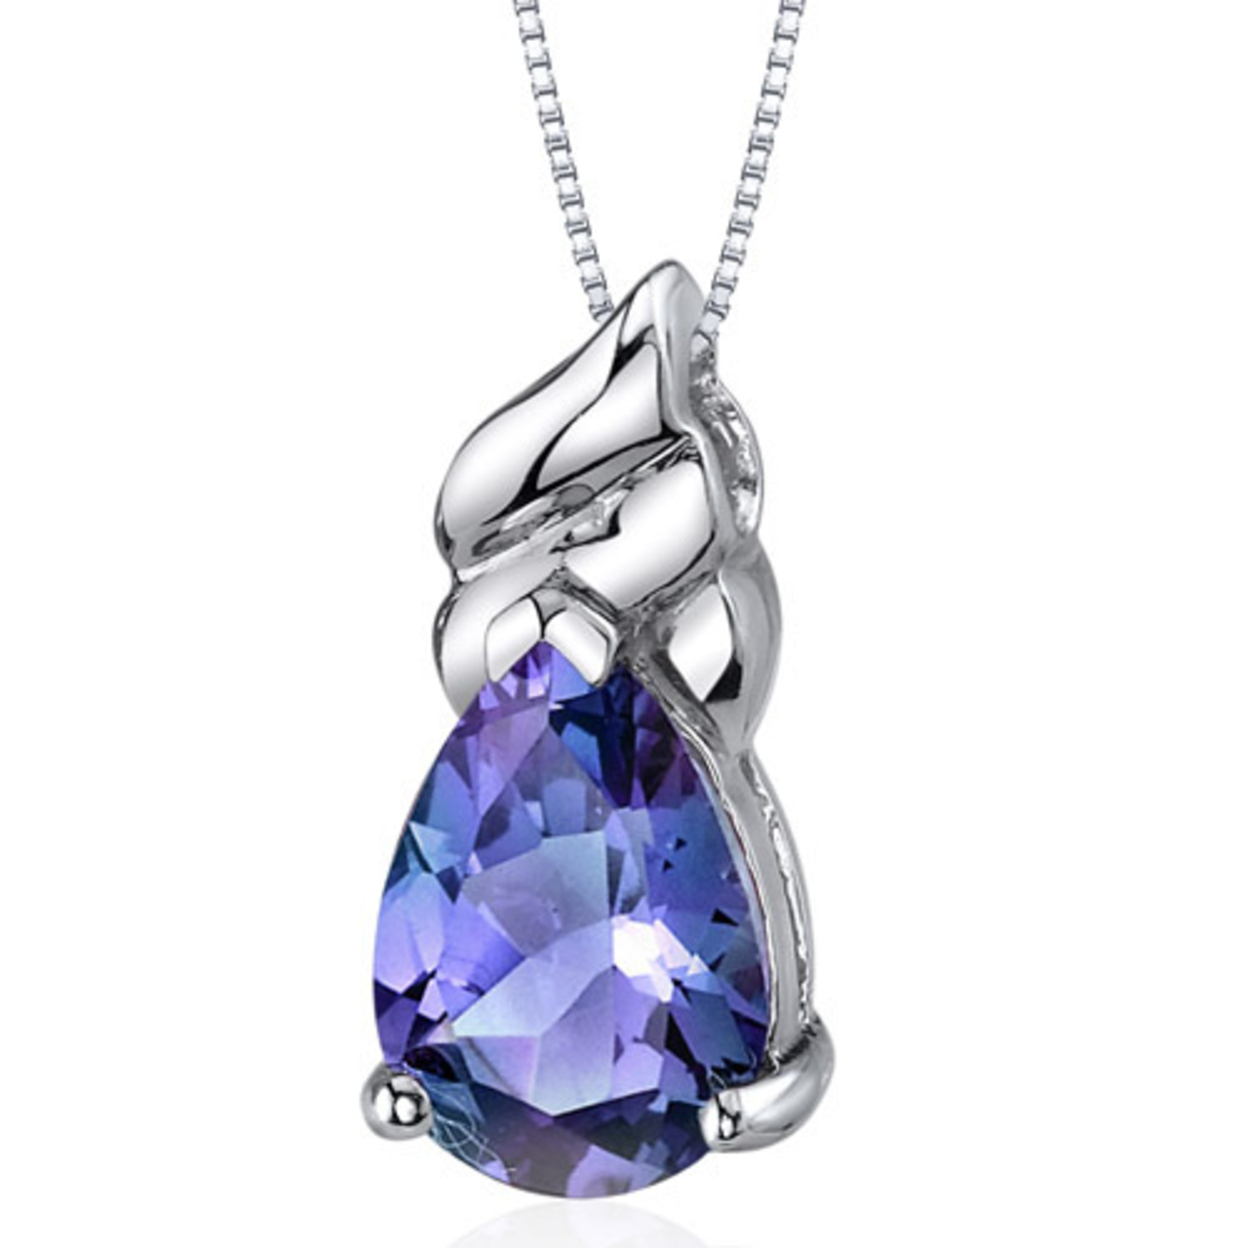 Oravo 3.75 Carat T.g.w. Pear Shape Created Alexandrite Rhodium Over Sterling Silver Pendant, 18""